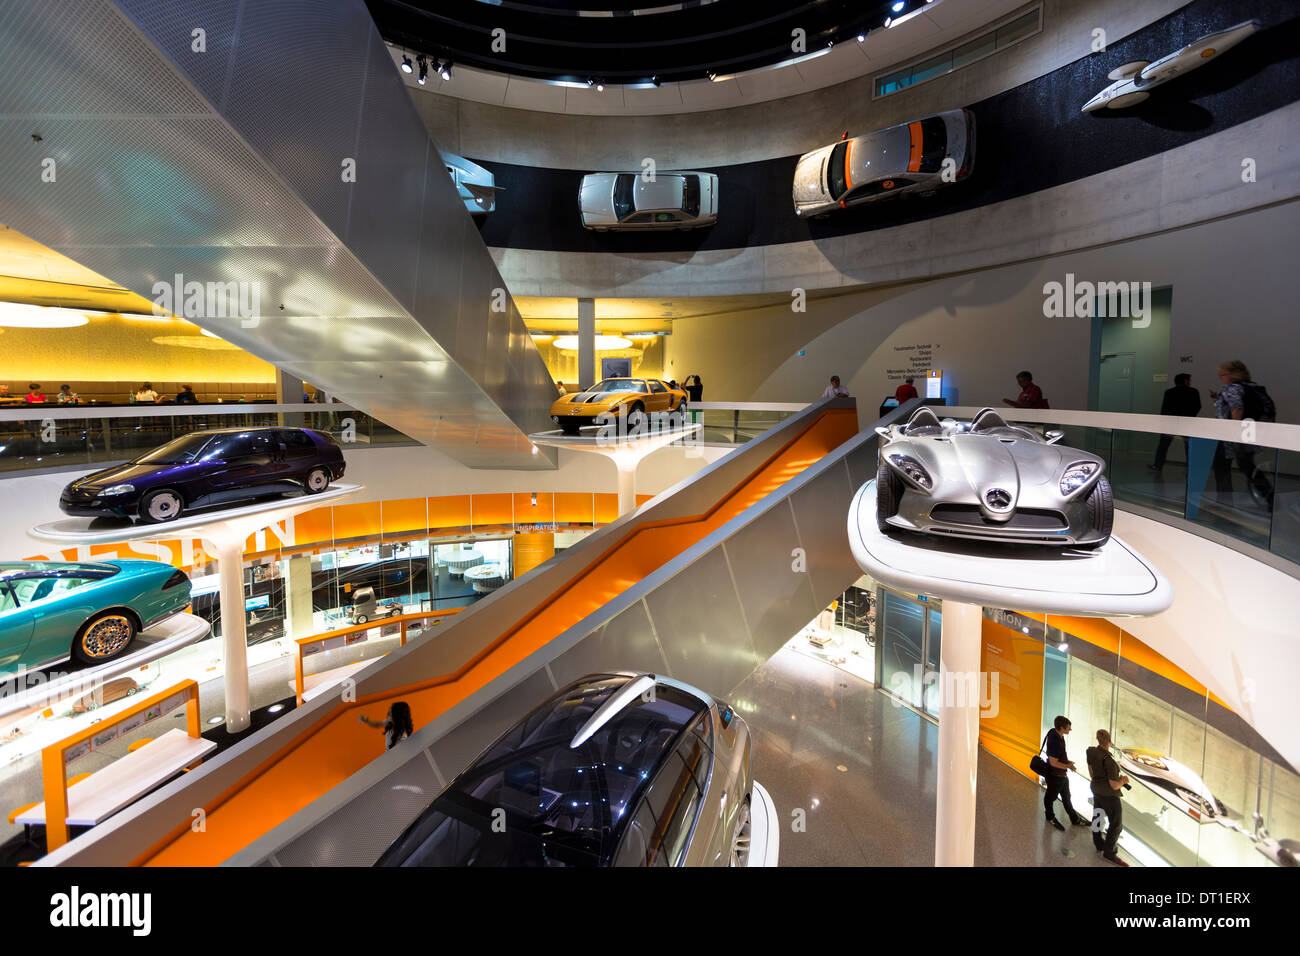 Concept Cars Stock Photos & Concept Cars Stock Images - Alamy